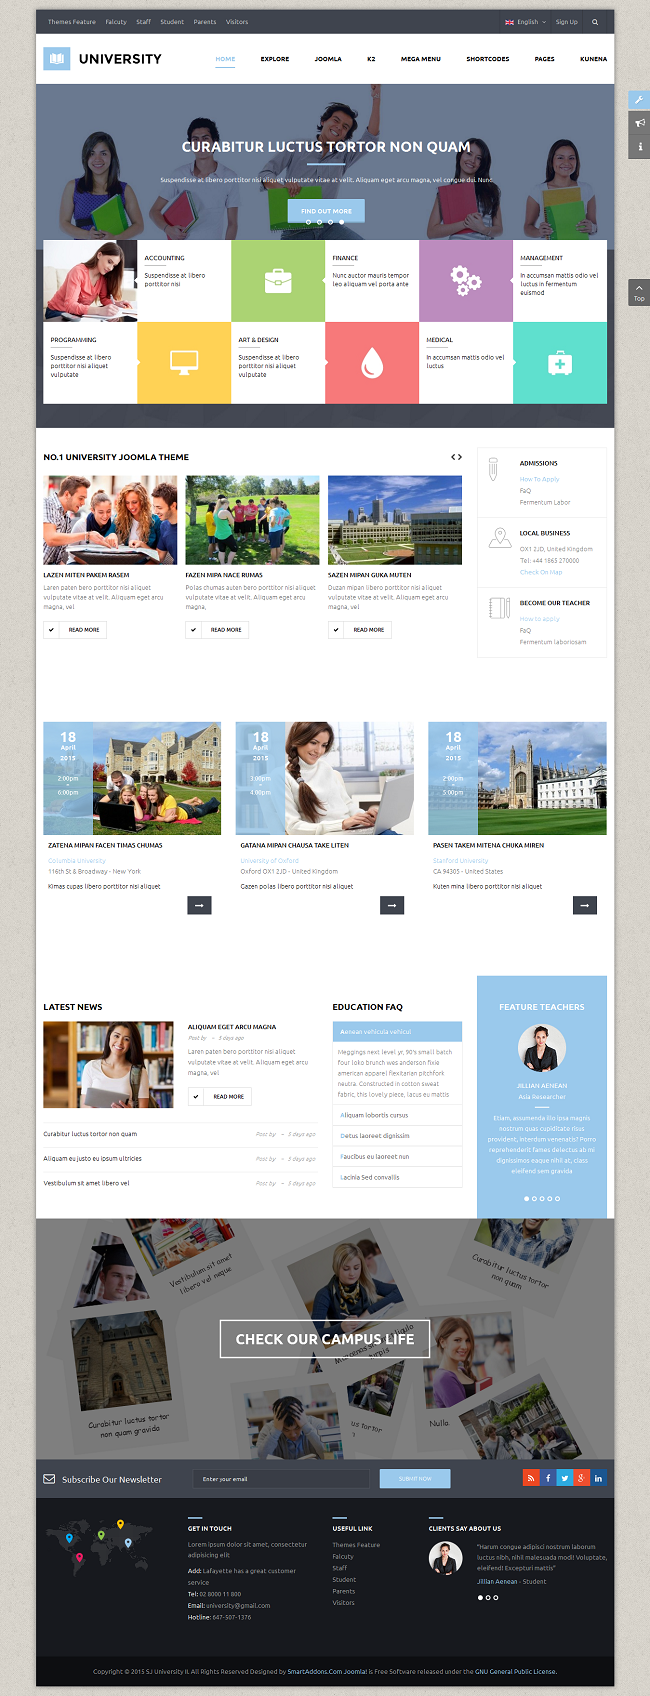 SJ University II - Responsive Joomla Educational Template - 04_index-framed.png